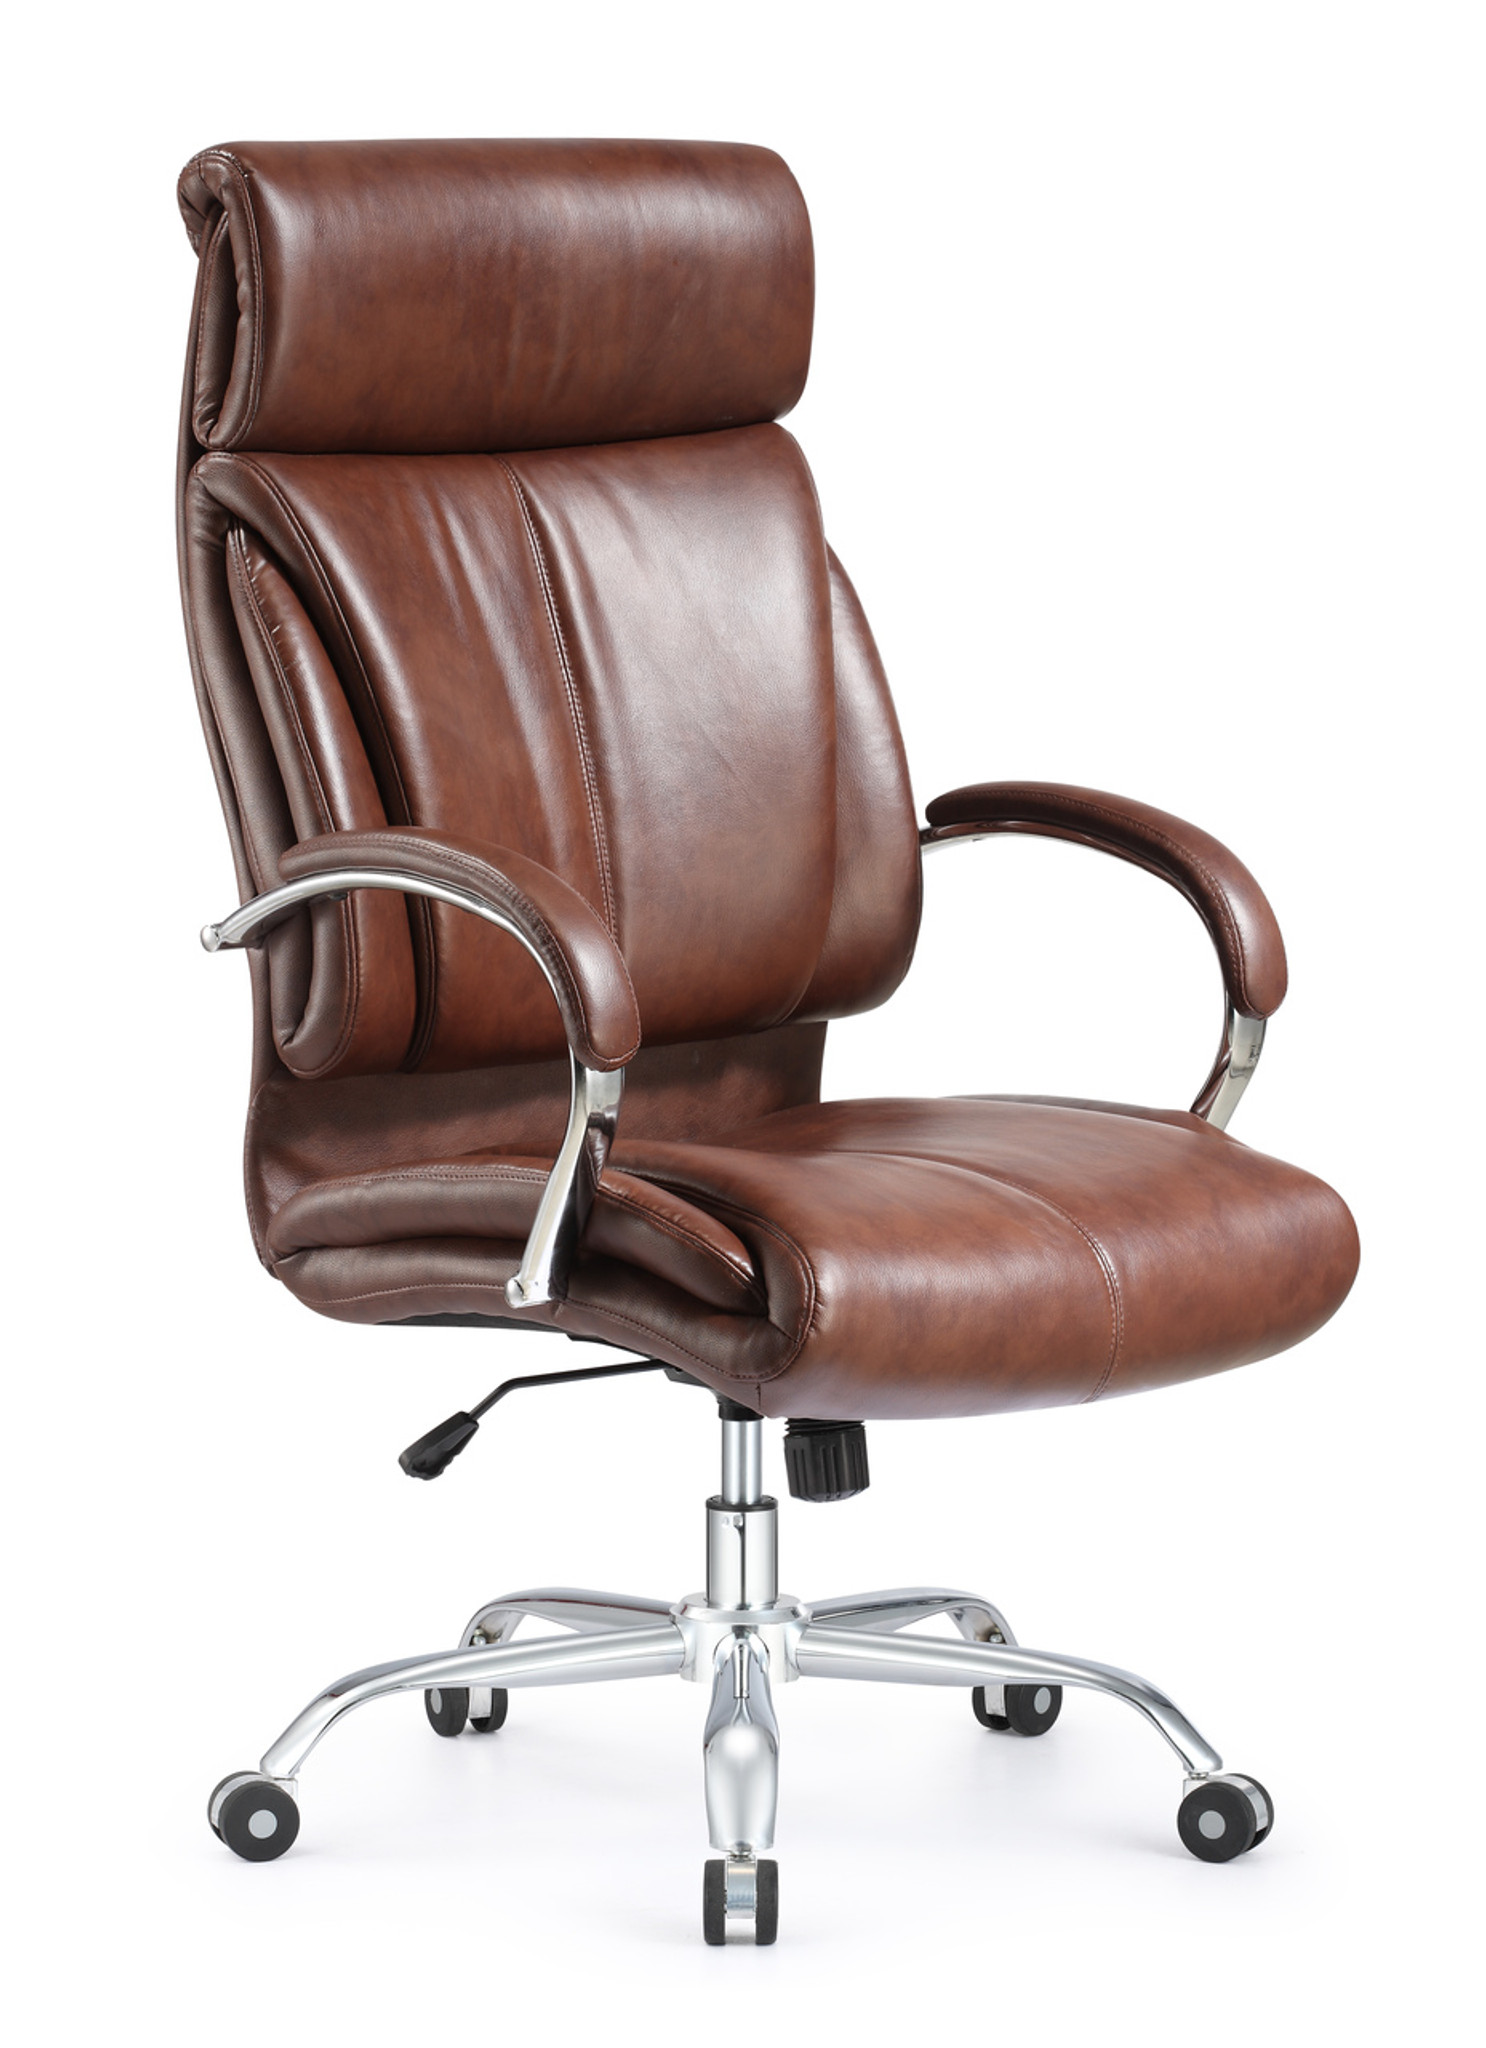 ergonomic style and vintage high back leather office chair brown